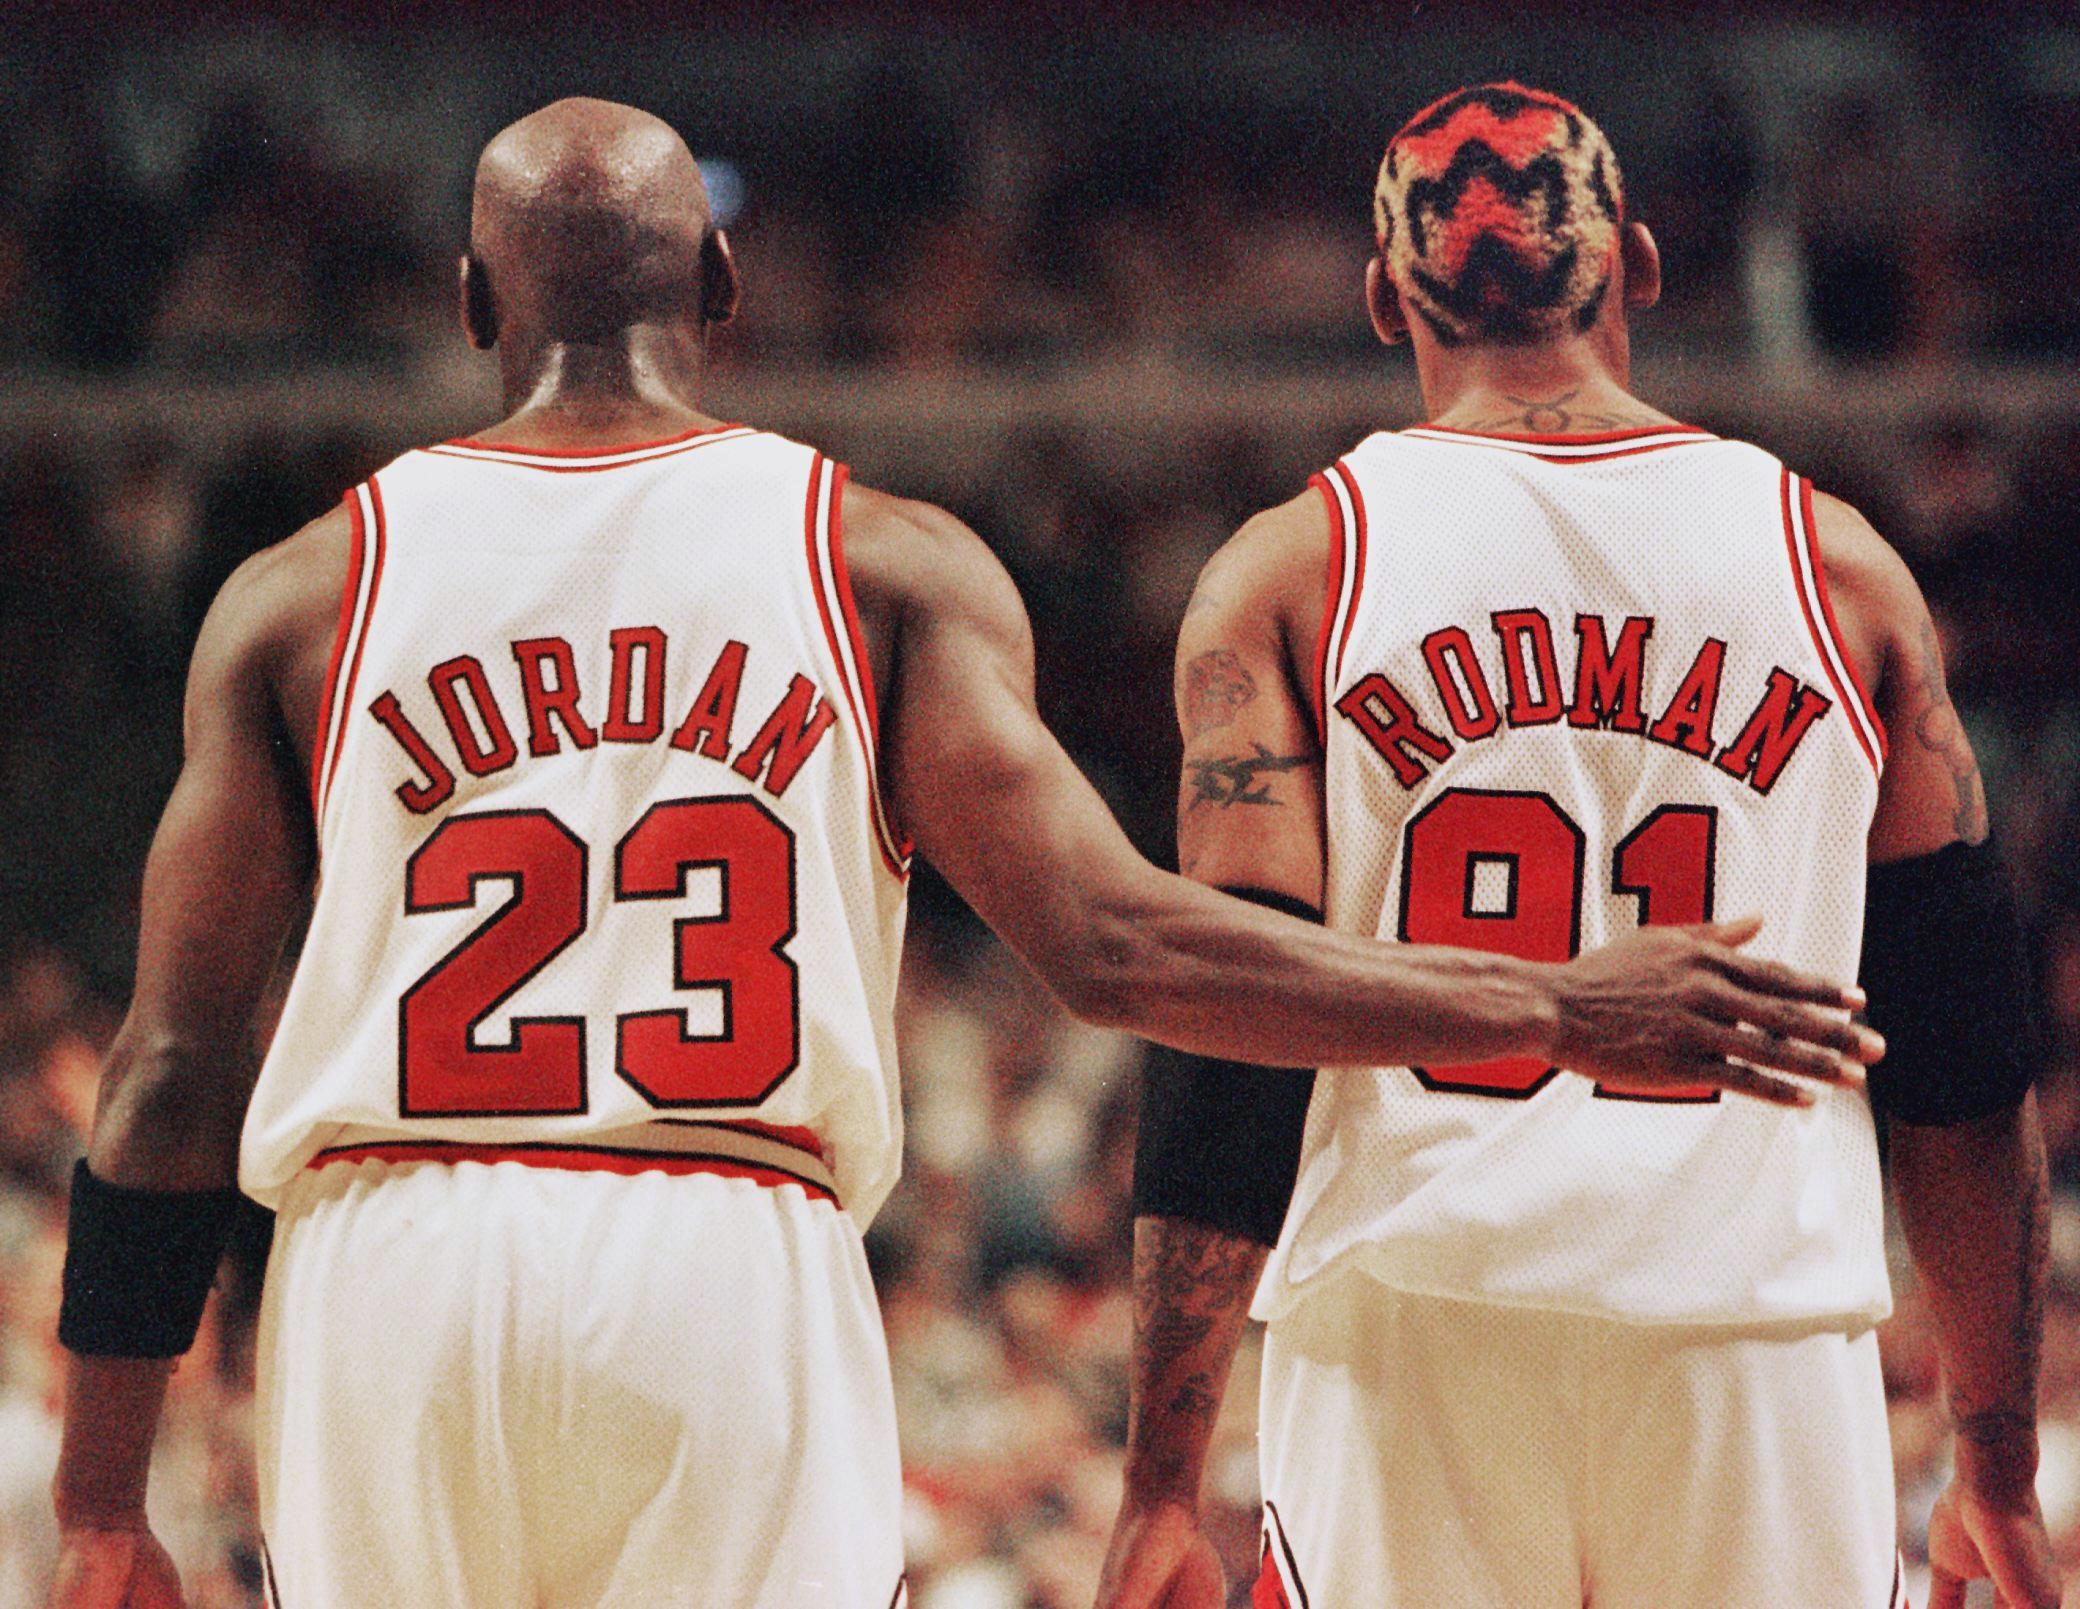 Kobe Bryant Could've Learned a Lot From How Michael Jordan Managed His Relationship With Dennis Rodman